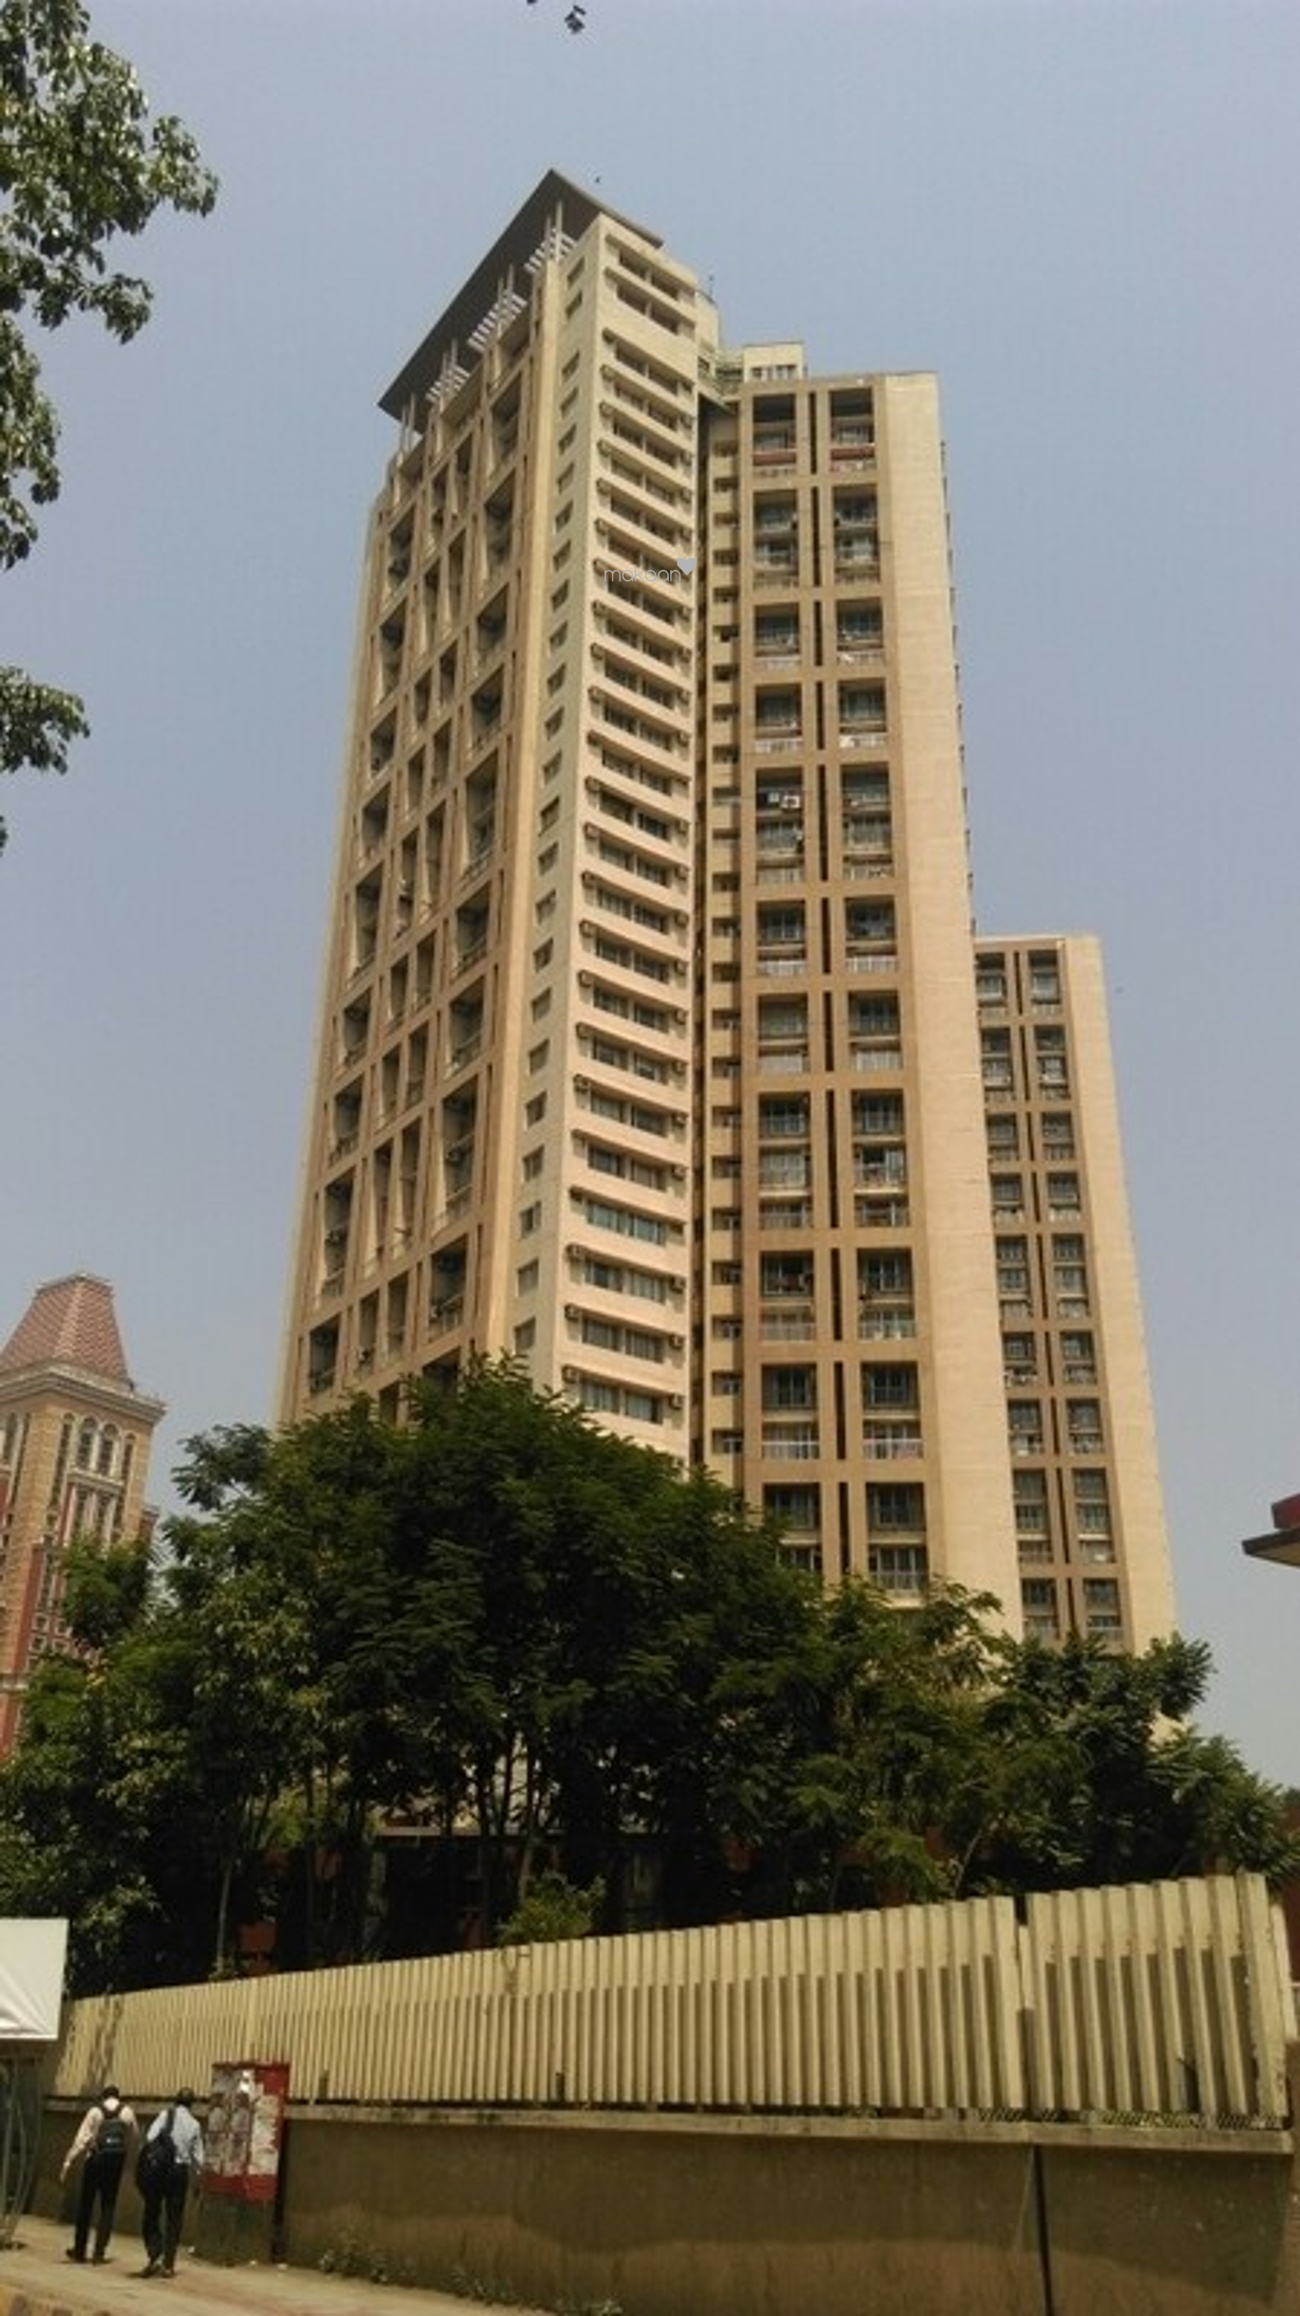 1915 sq ft 3BHK 3BHK+4T (1,915 sq ft) + Servant Room Property By Black and White Aventura In Ashok Towers, Parel